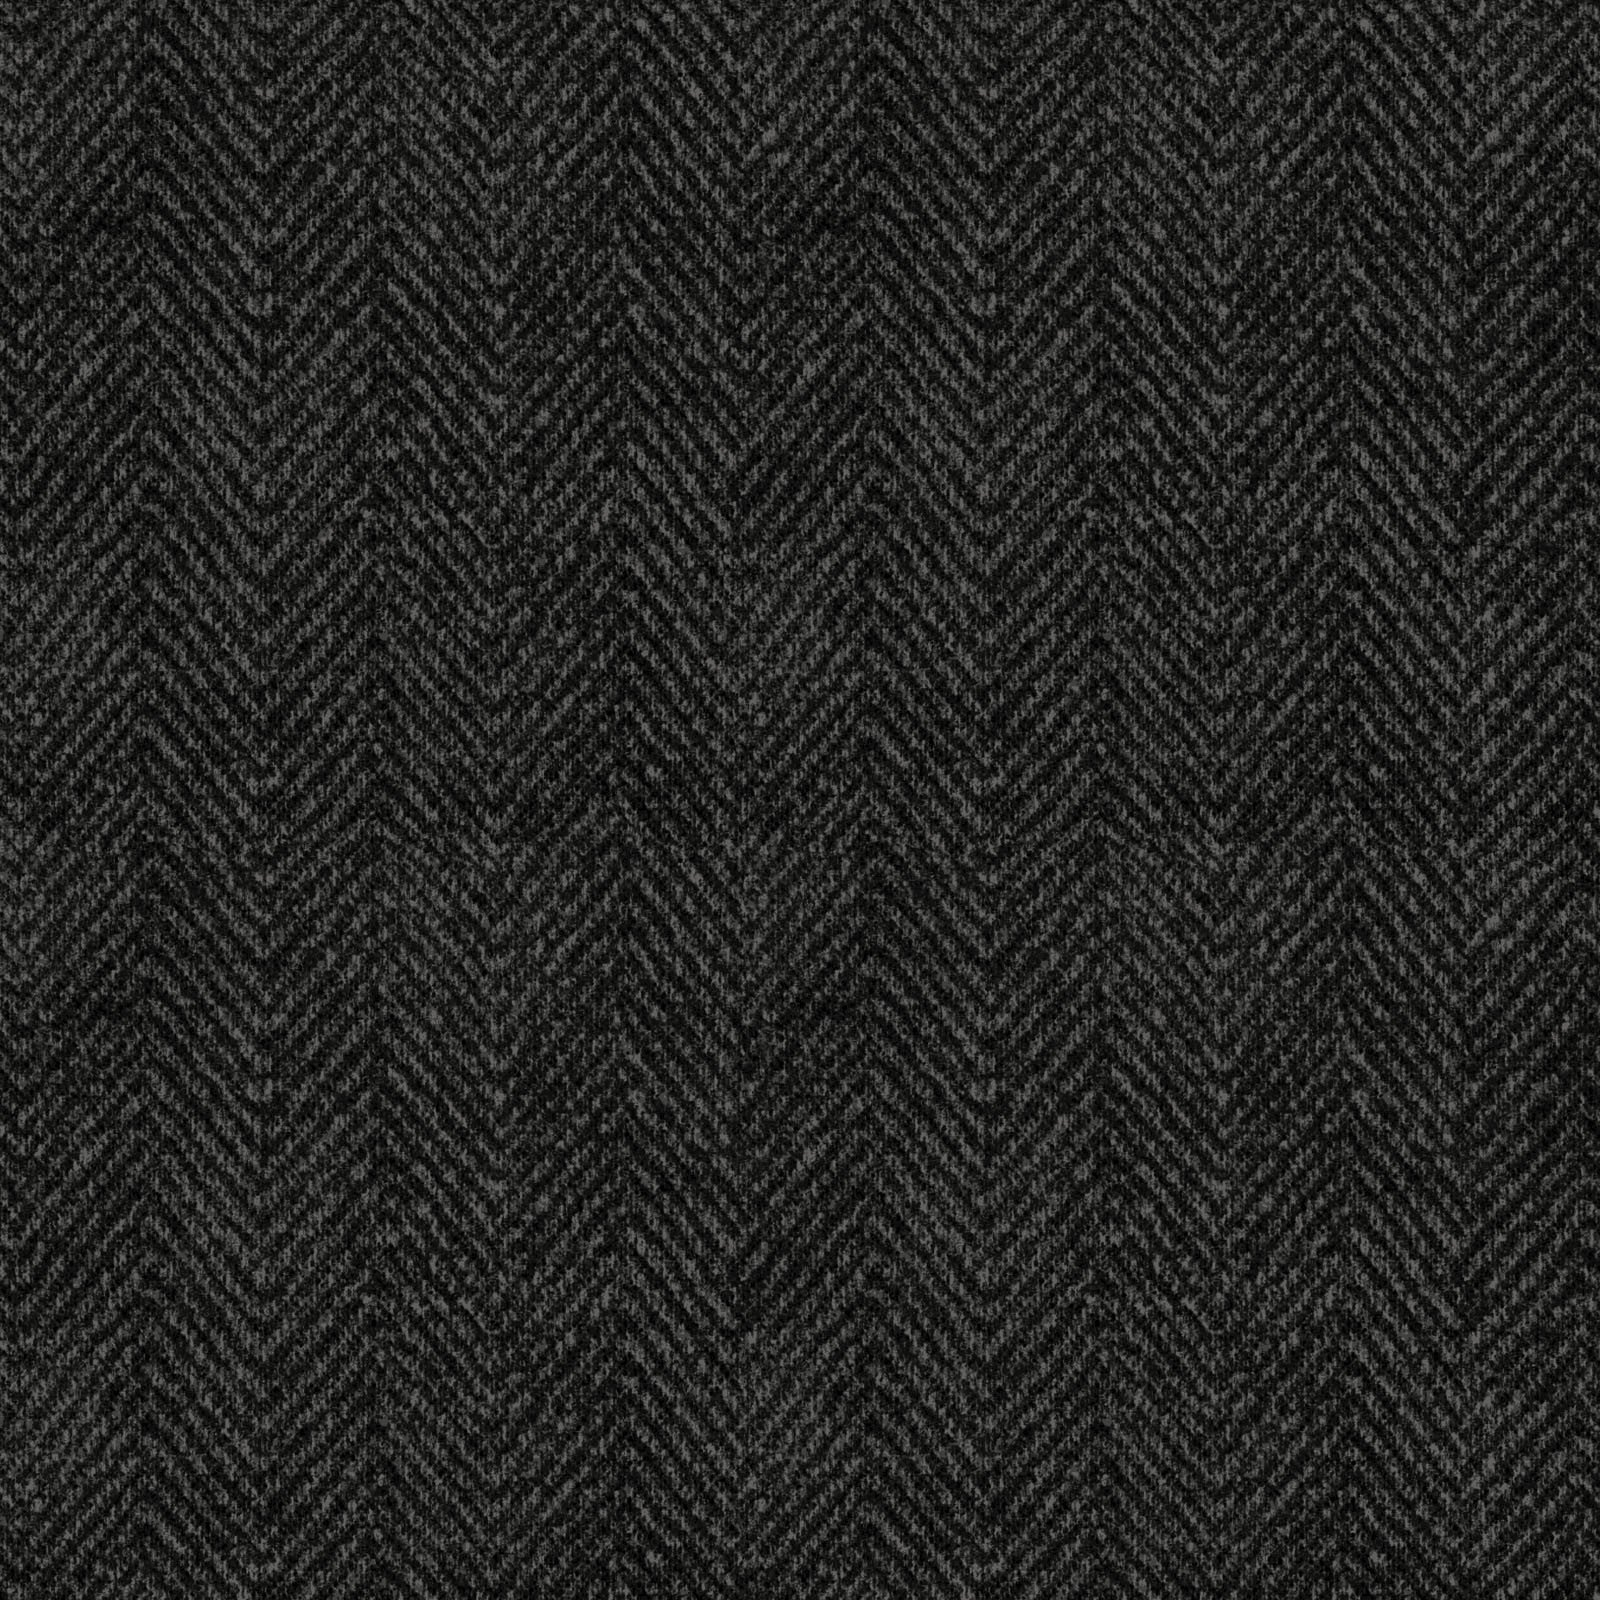 Woolies Black Herringbone